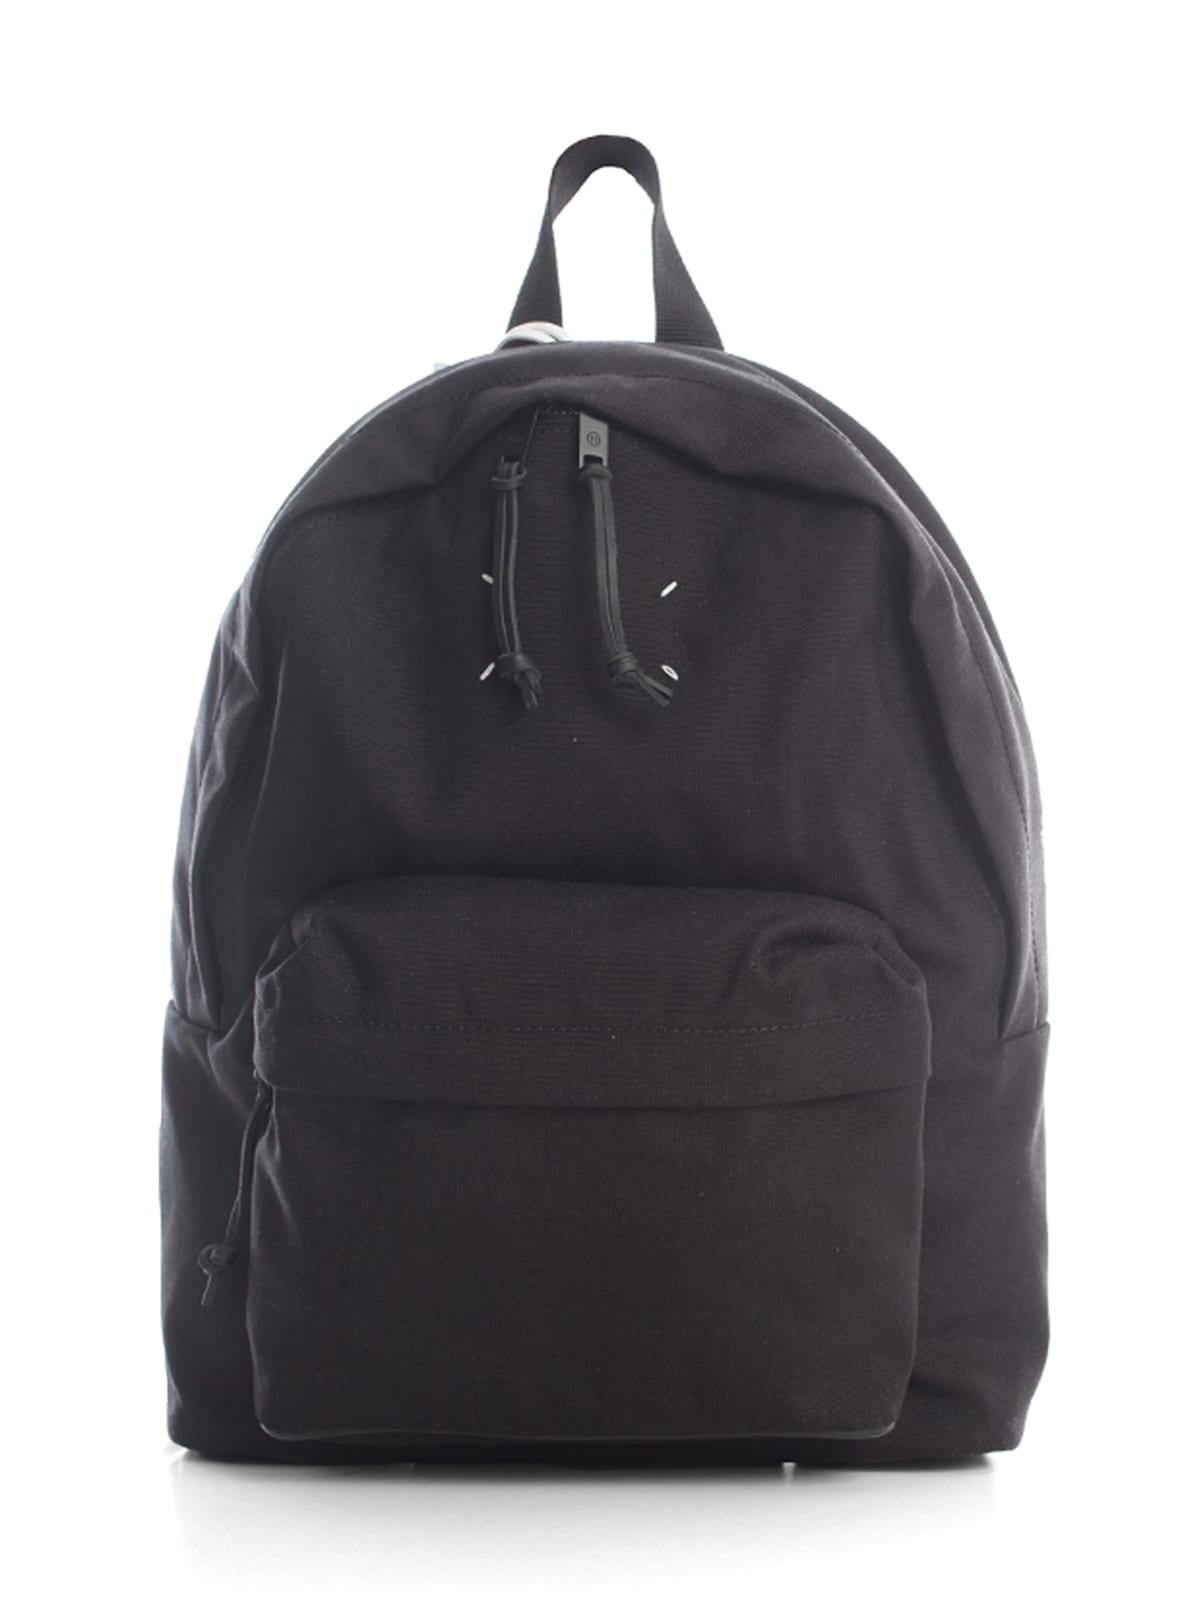 Maison Margiela Cordura Leather Backpack